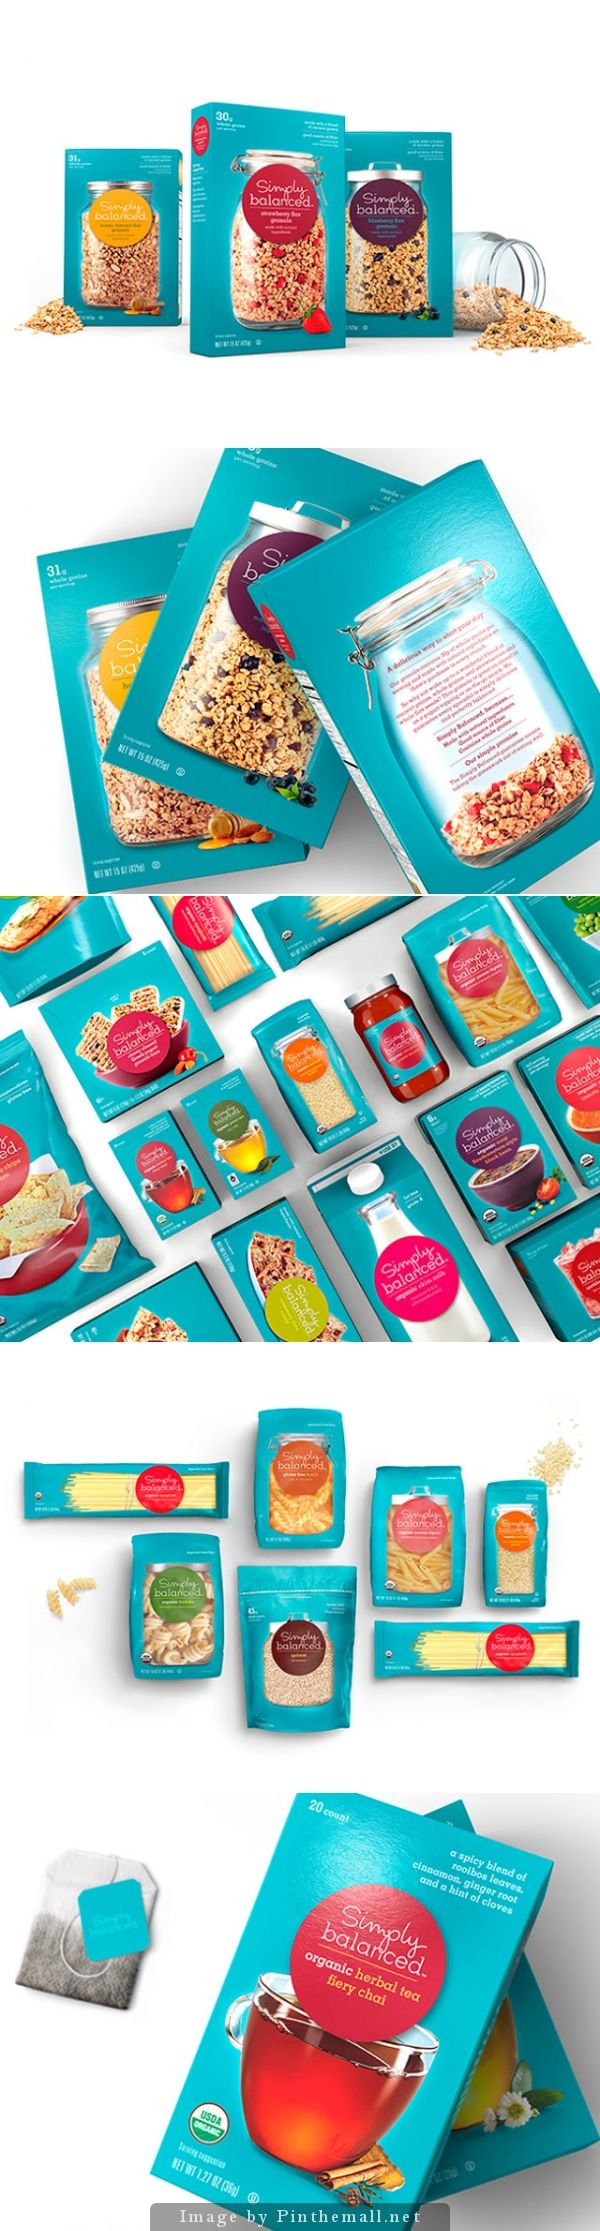 Simply Balanced #packaging by Pearlfisher - http://www.packagingoftheworld.com/2014/11/simply-balanced.html PD